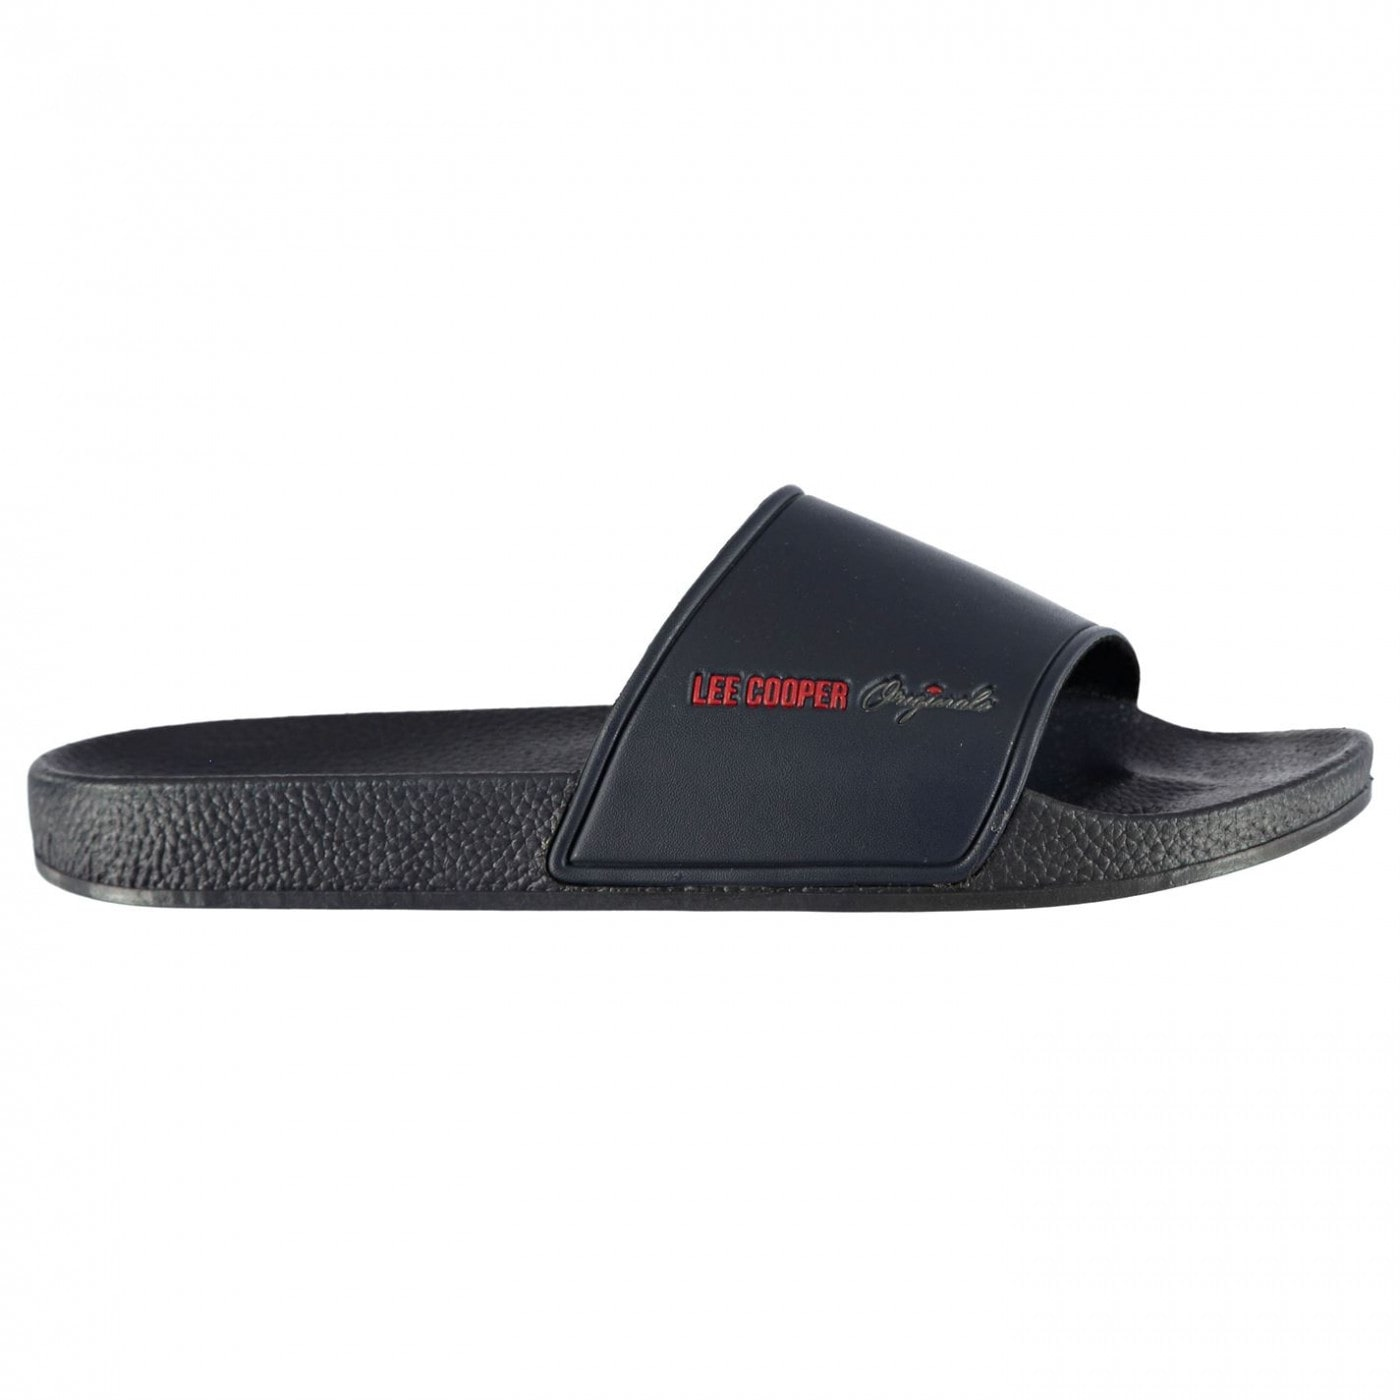 Lee Cooper Sliders Mens